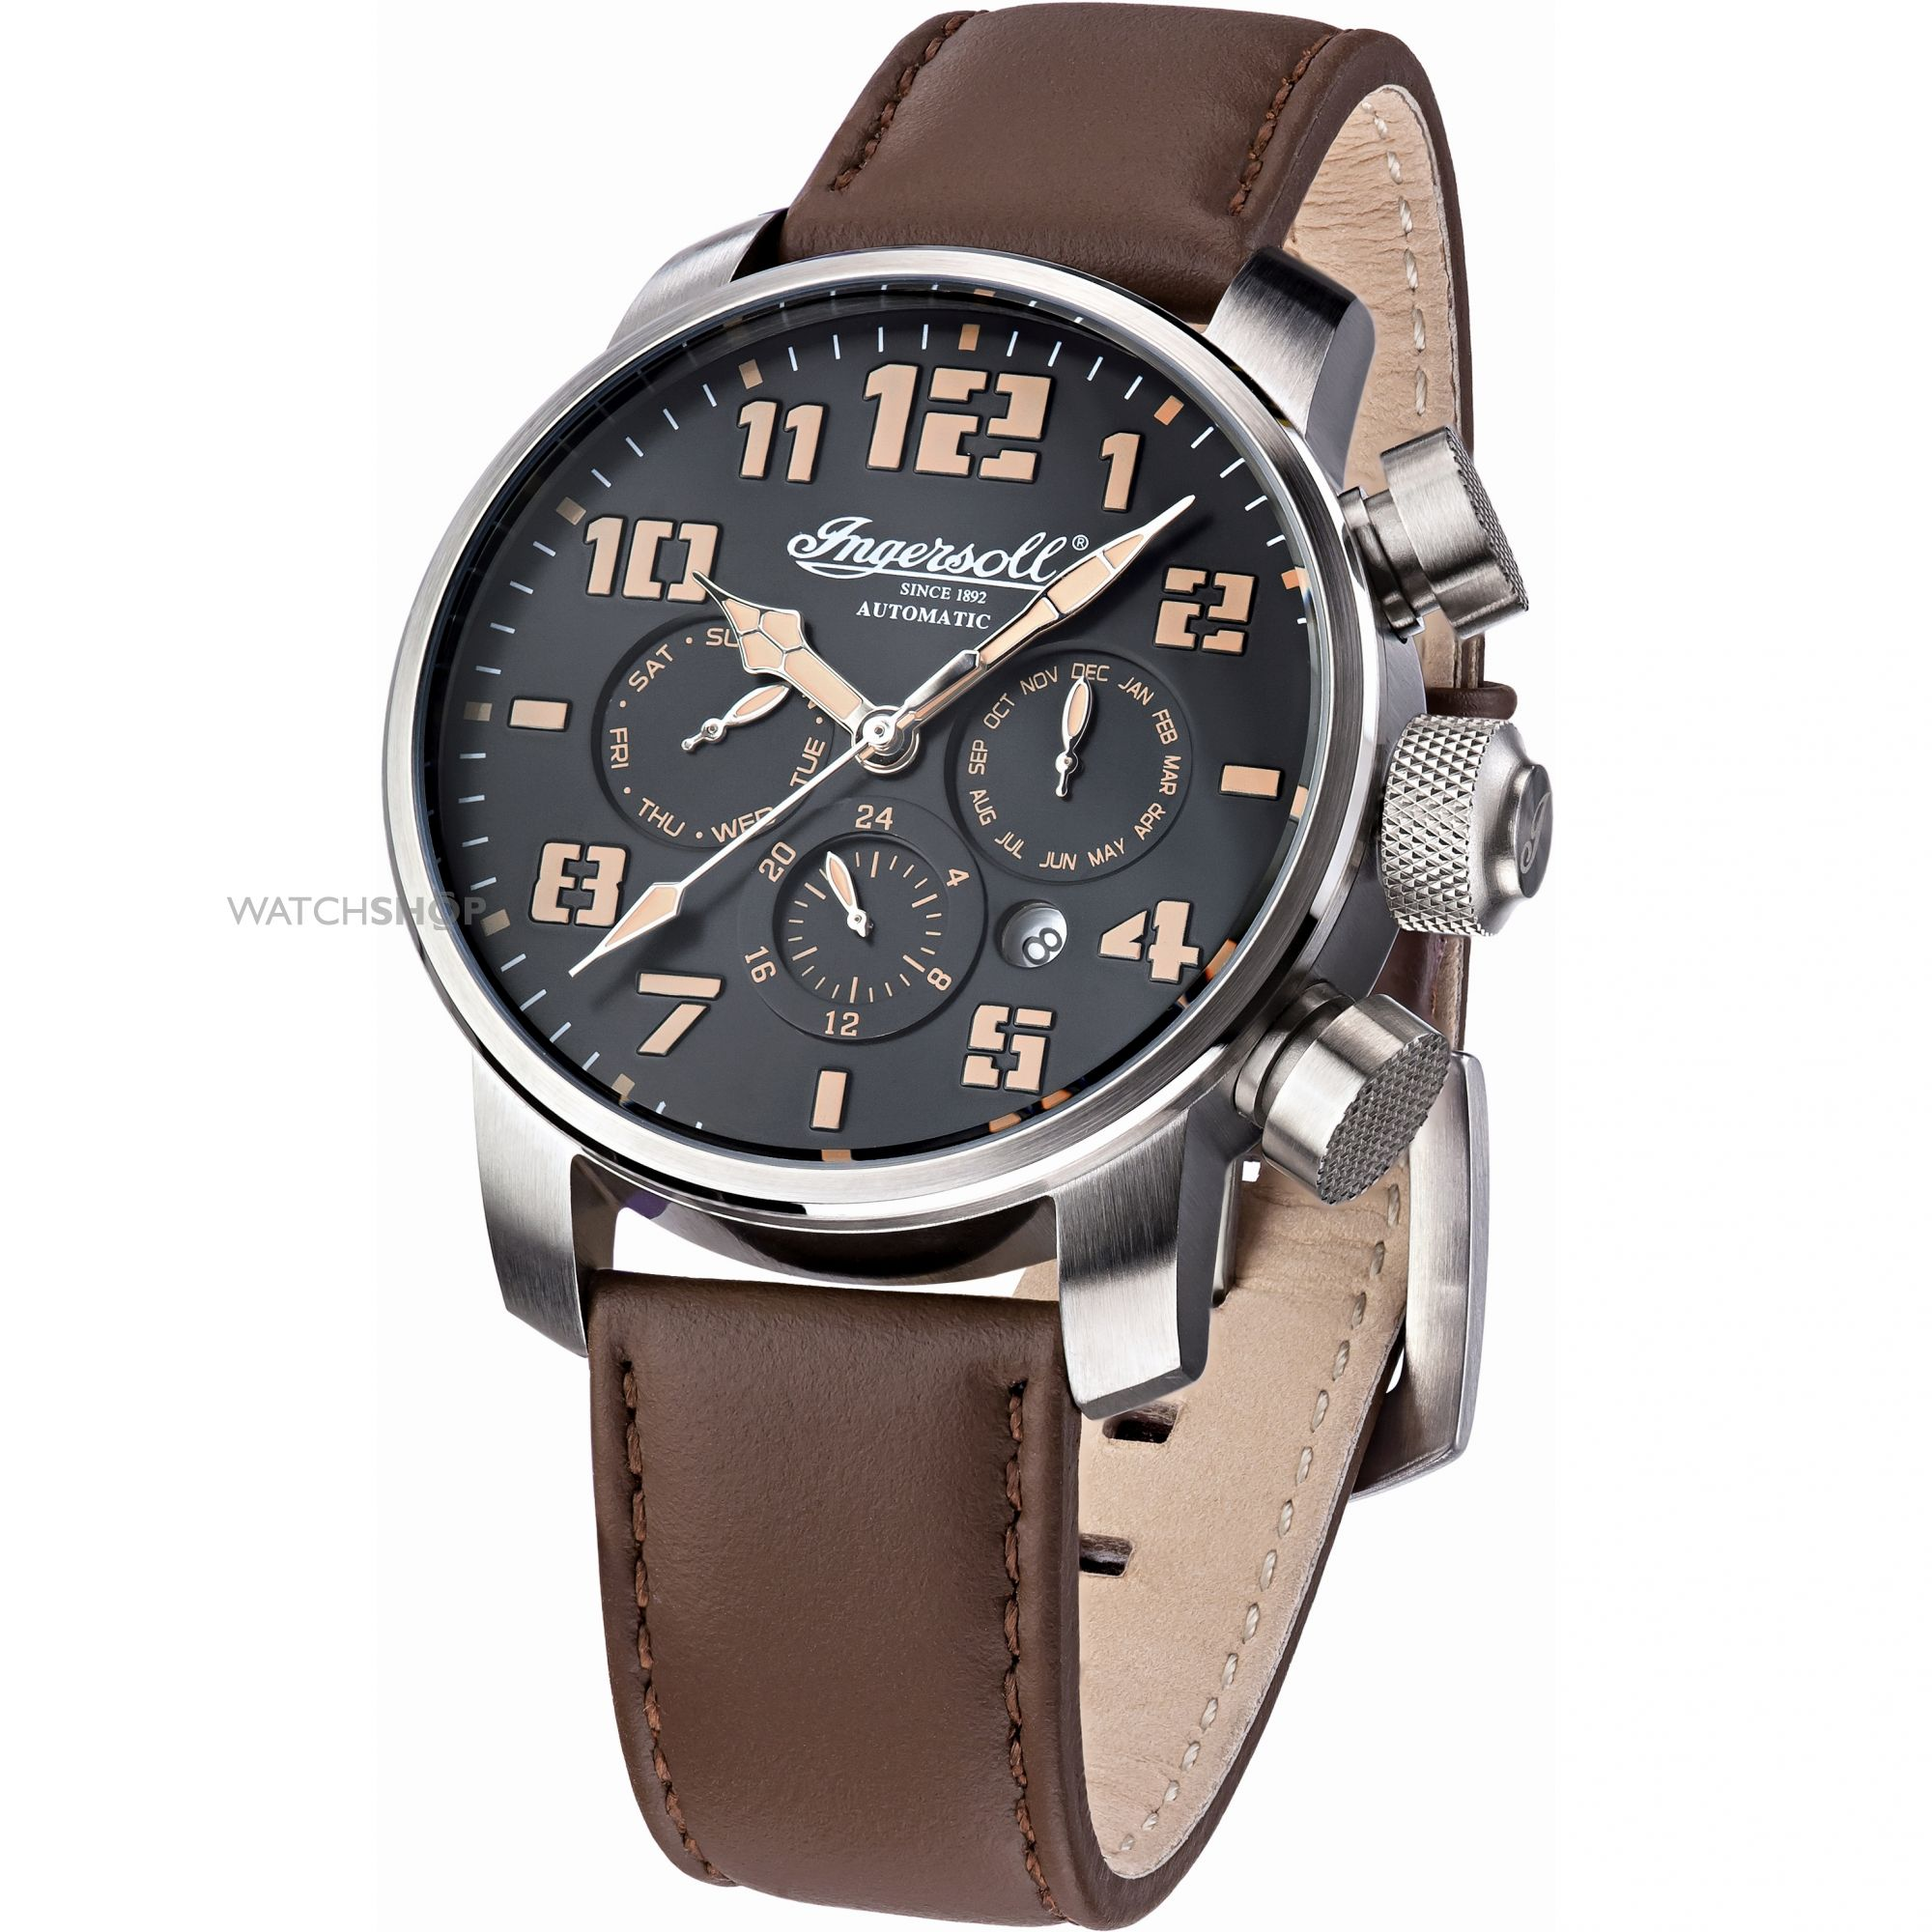 men s ingersoll automatic automatic chronograph watch in1224sbk mens ingersoll automatic automatic chronograph watch in1224sbk